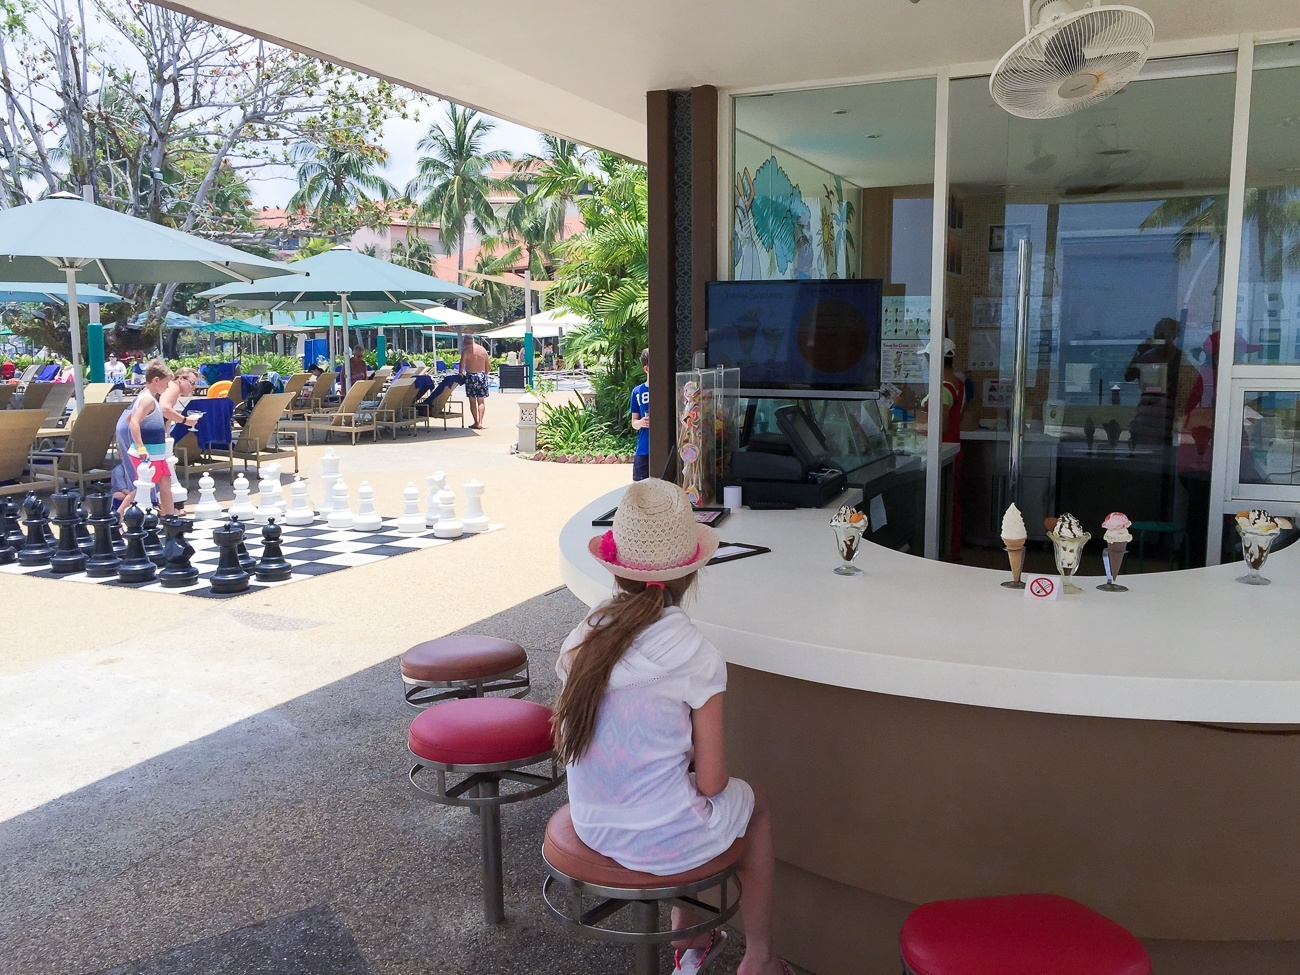 Kid-friendly amenities at Shangri-la's Tanjung Aru Resort and Spa include onsite games, an ice cream shop, a kids' club, awesome pool area and more.